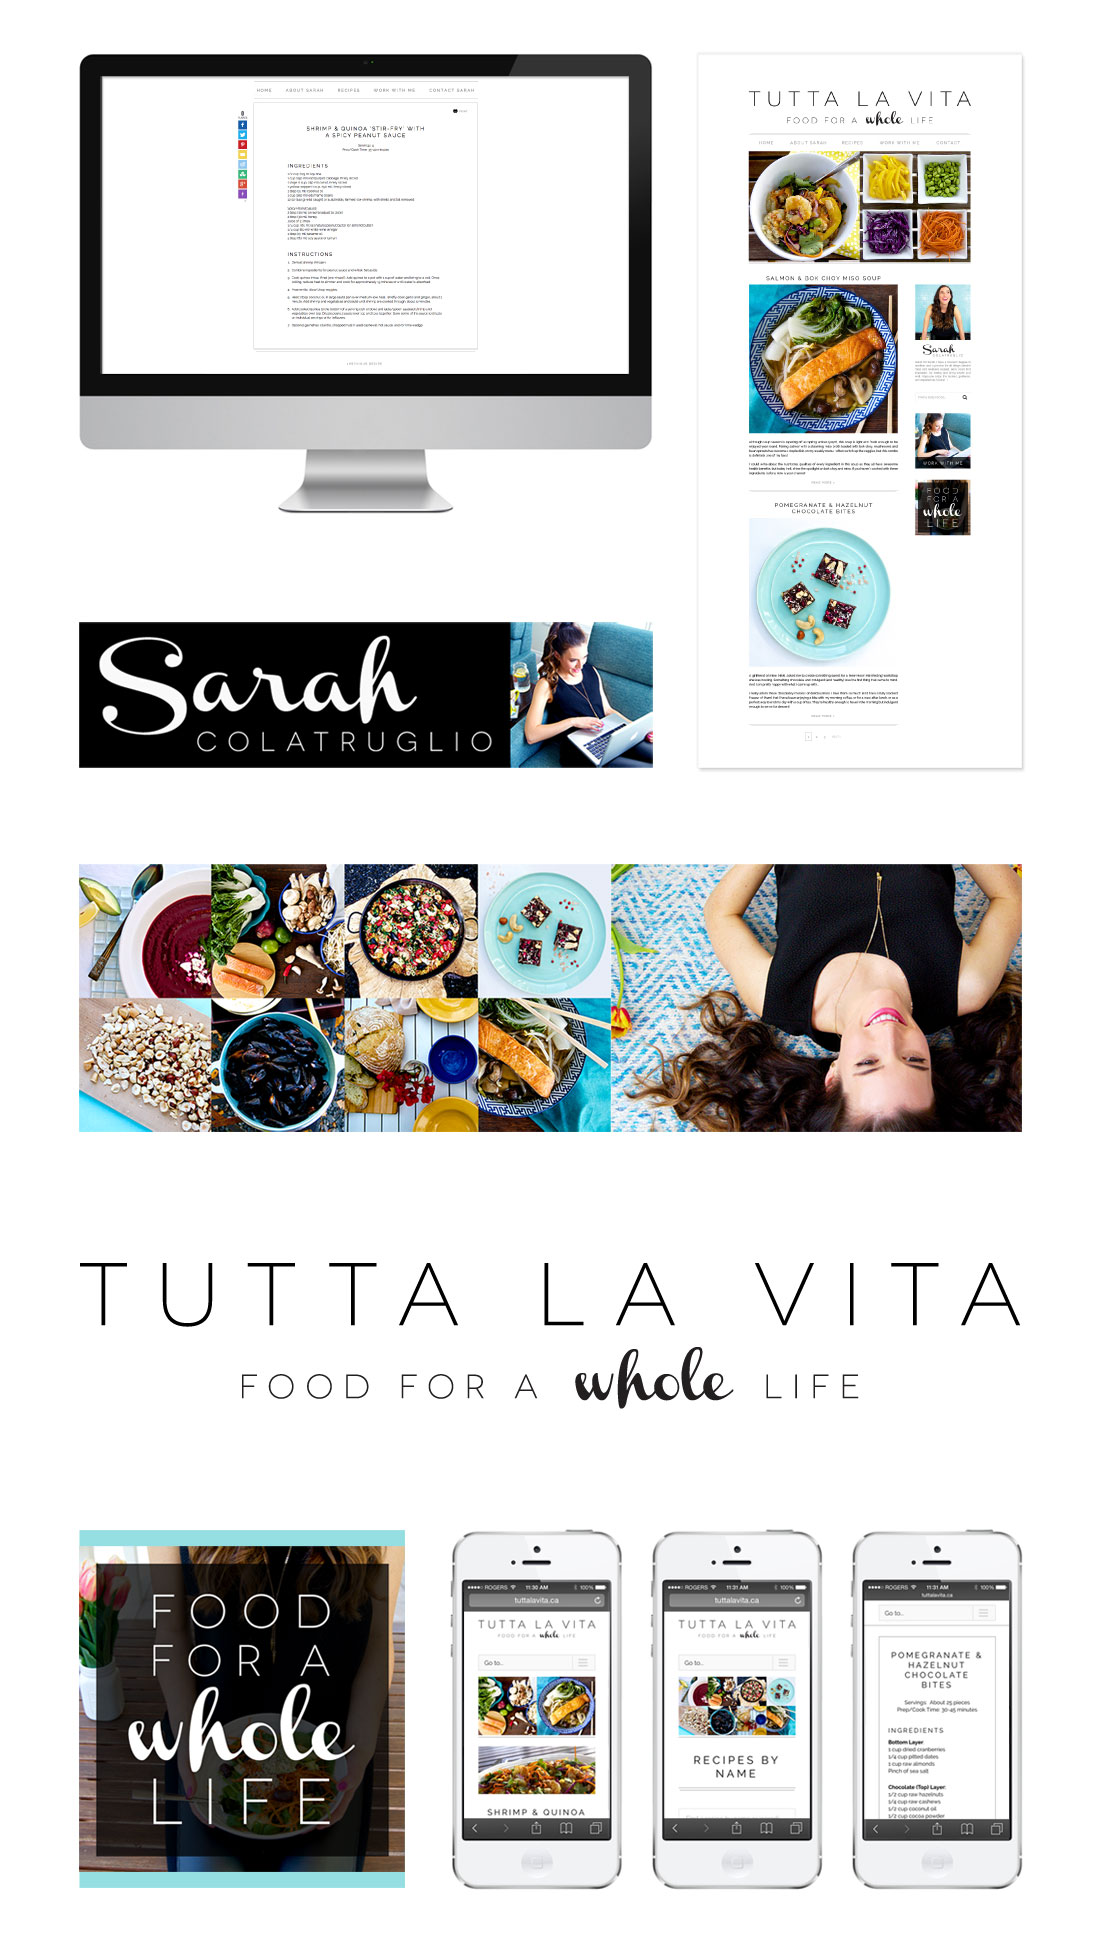 tutta-la-vita-website-design-branding-winnipeg-manitoba-responsive-mobile-optimized